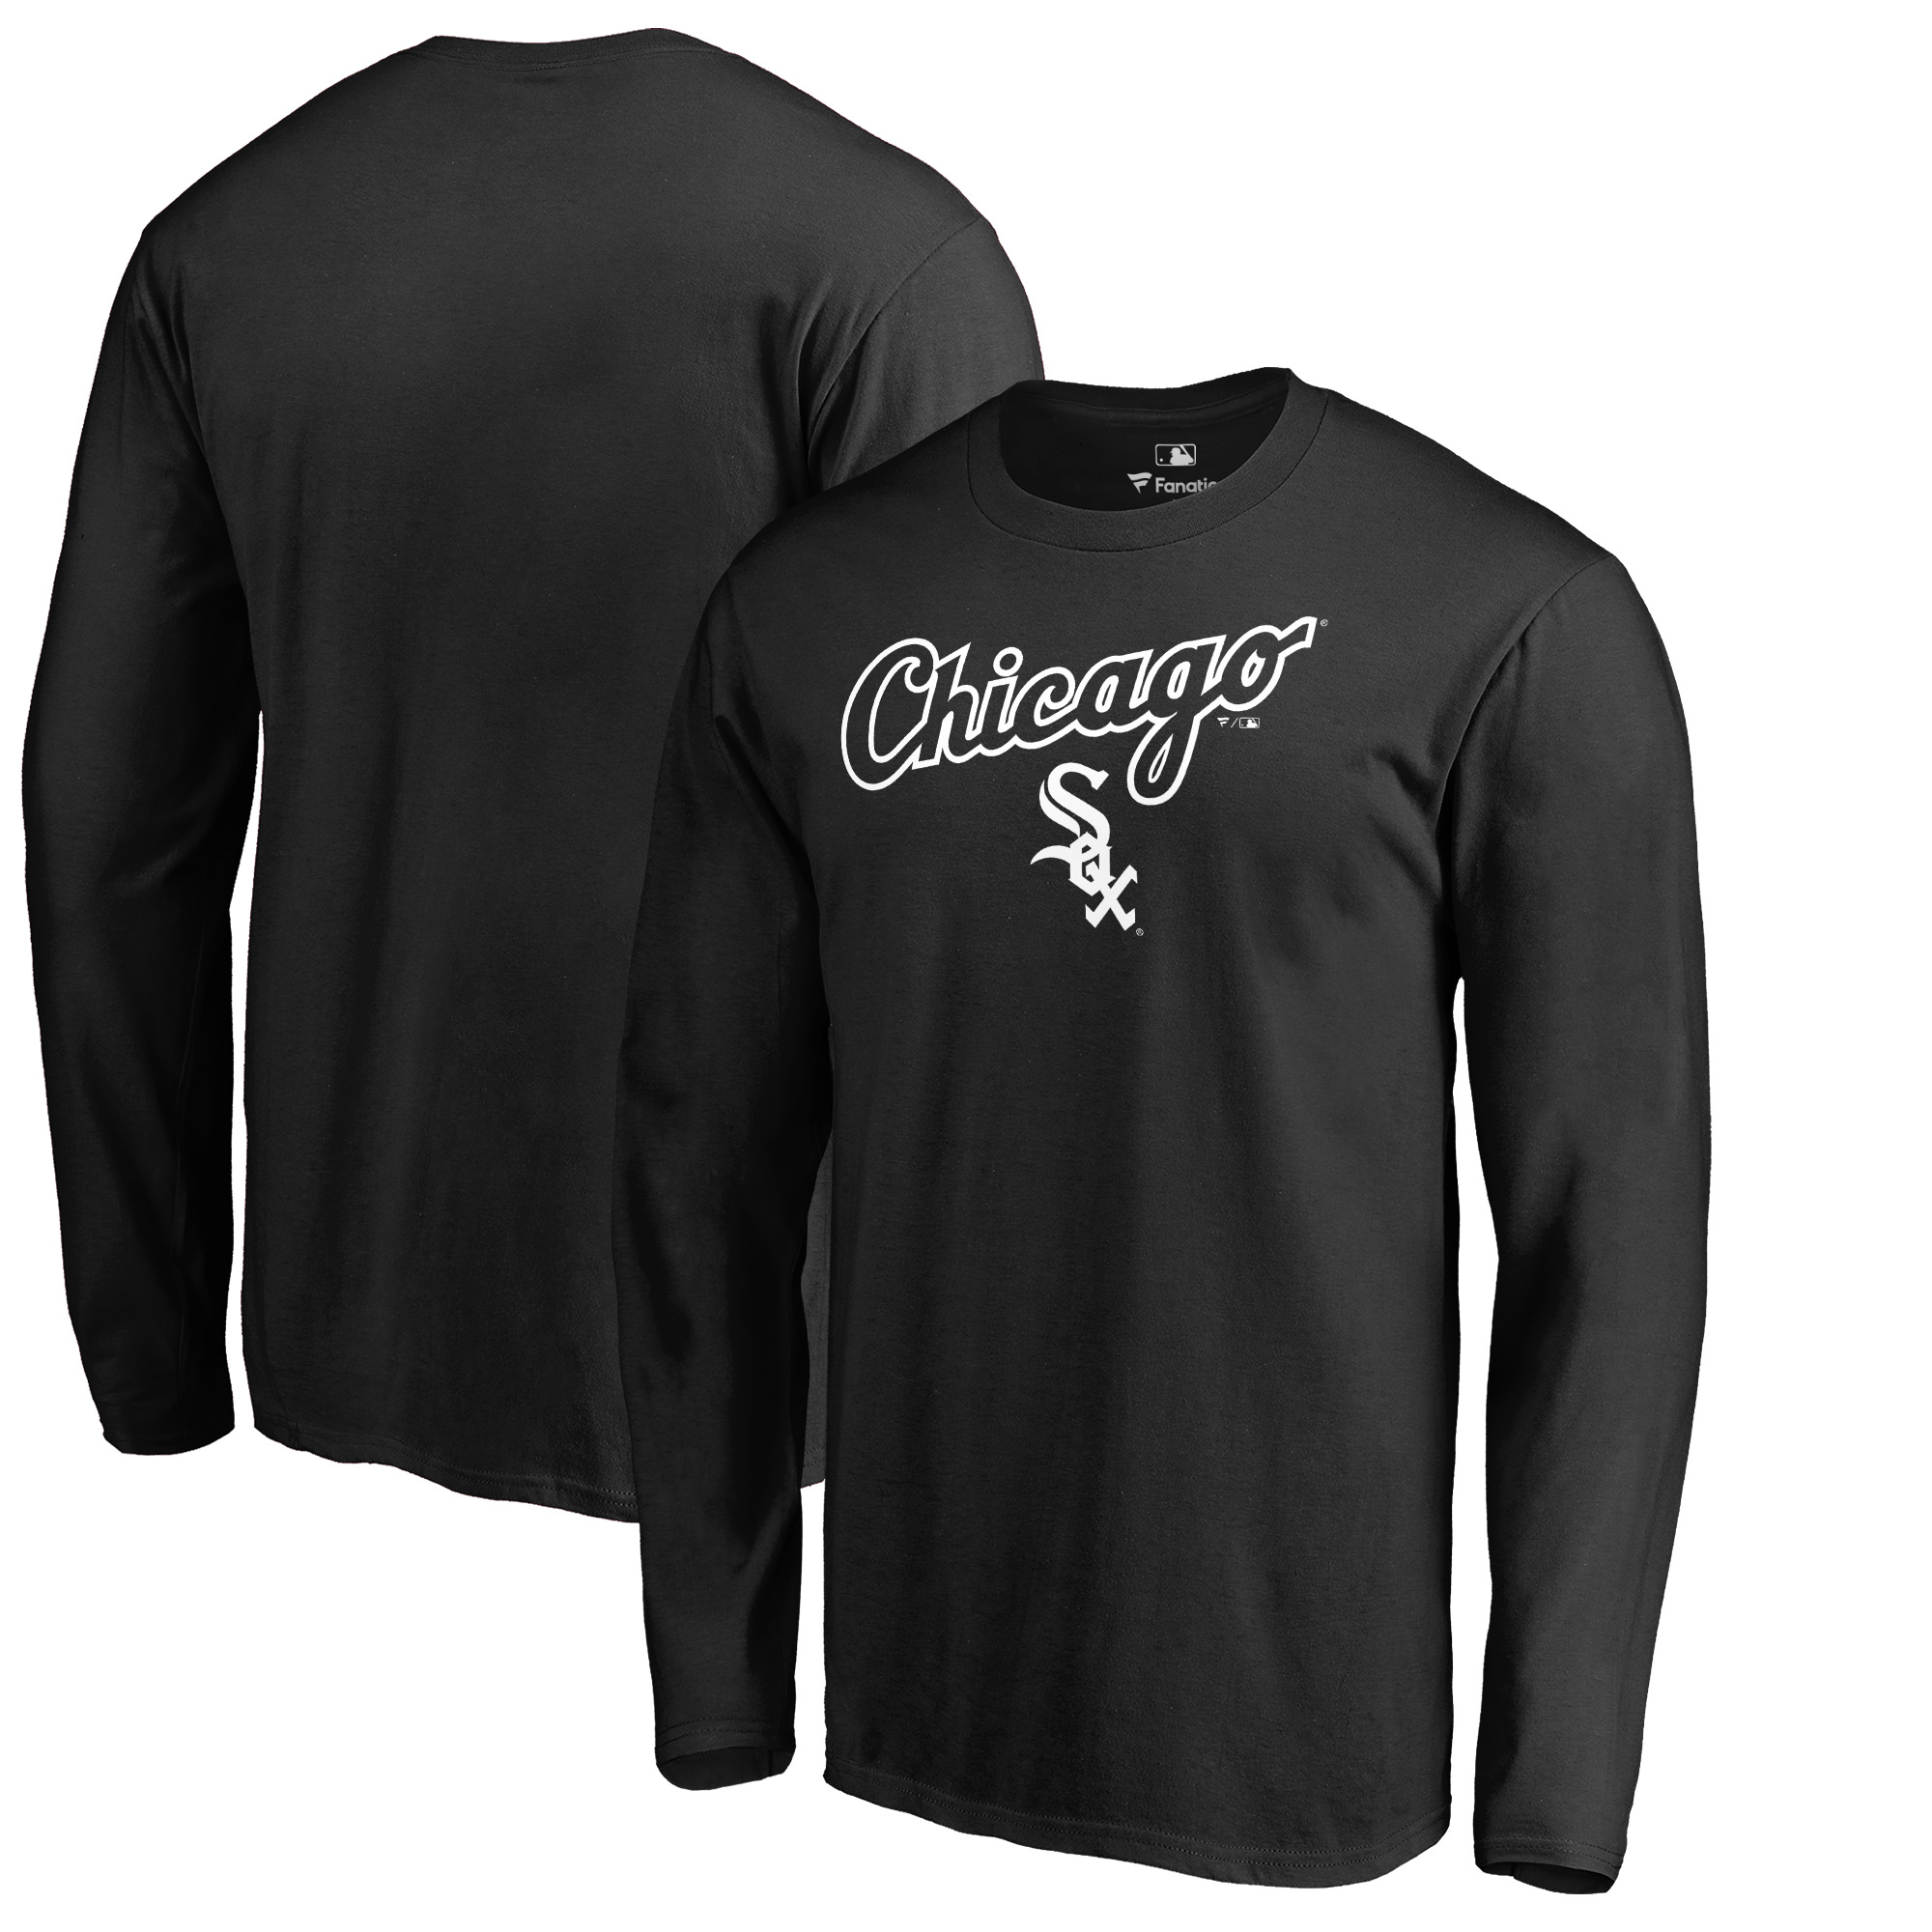 Chicago White Sox Fanatics Branded Team Lockup Long Sleeve T-Shirt - Black